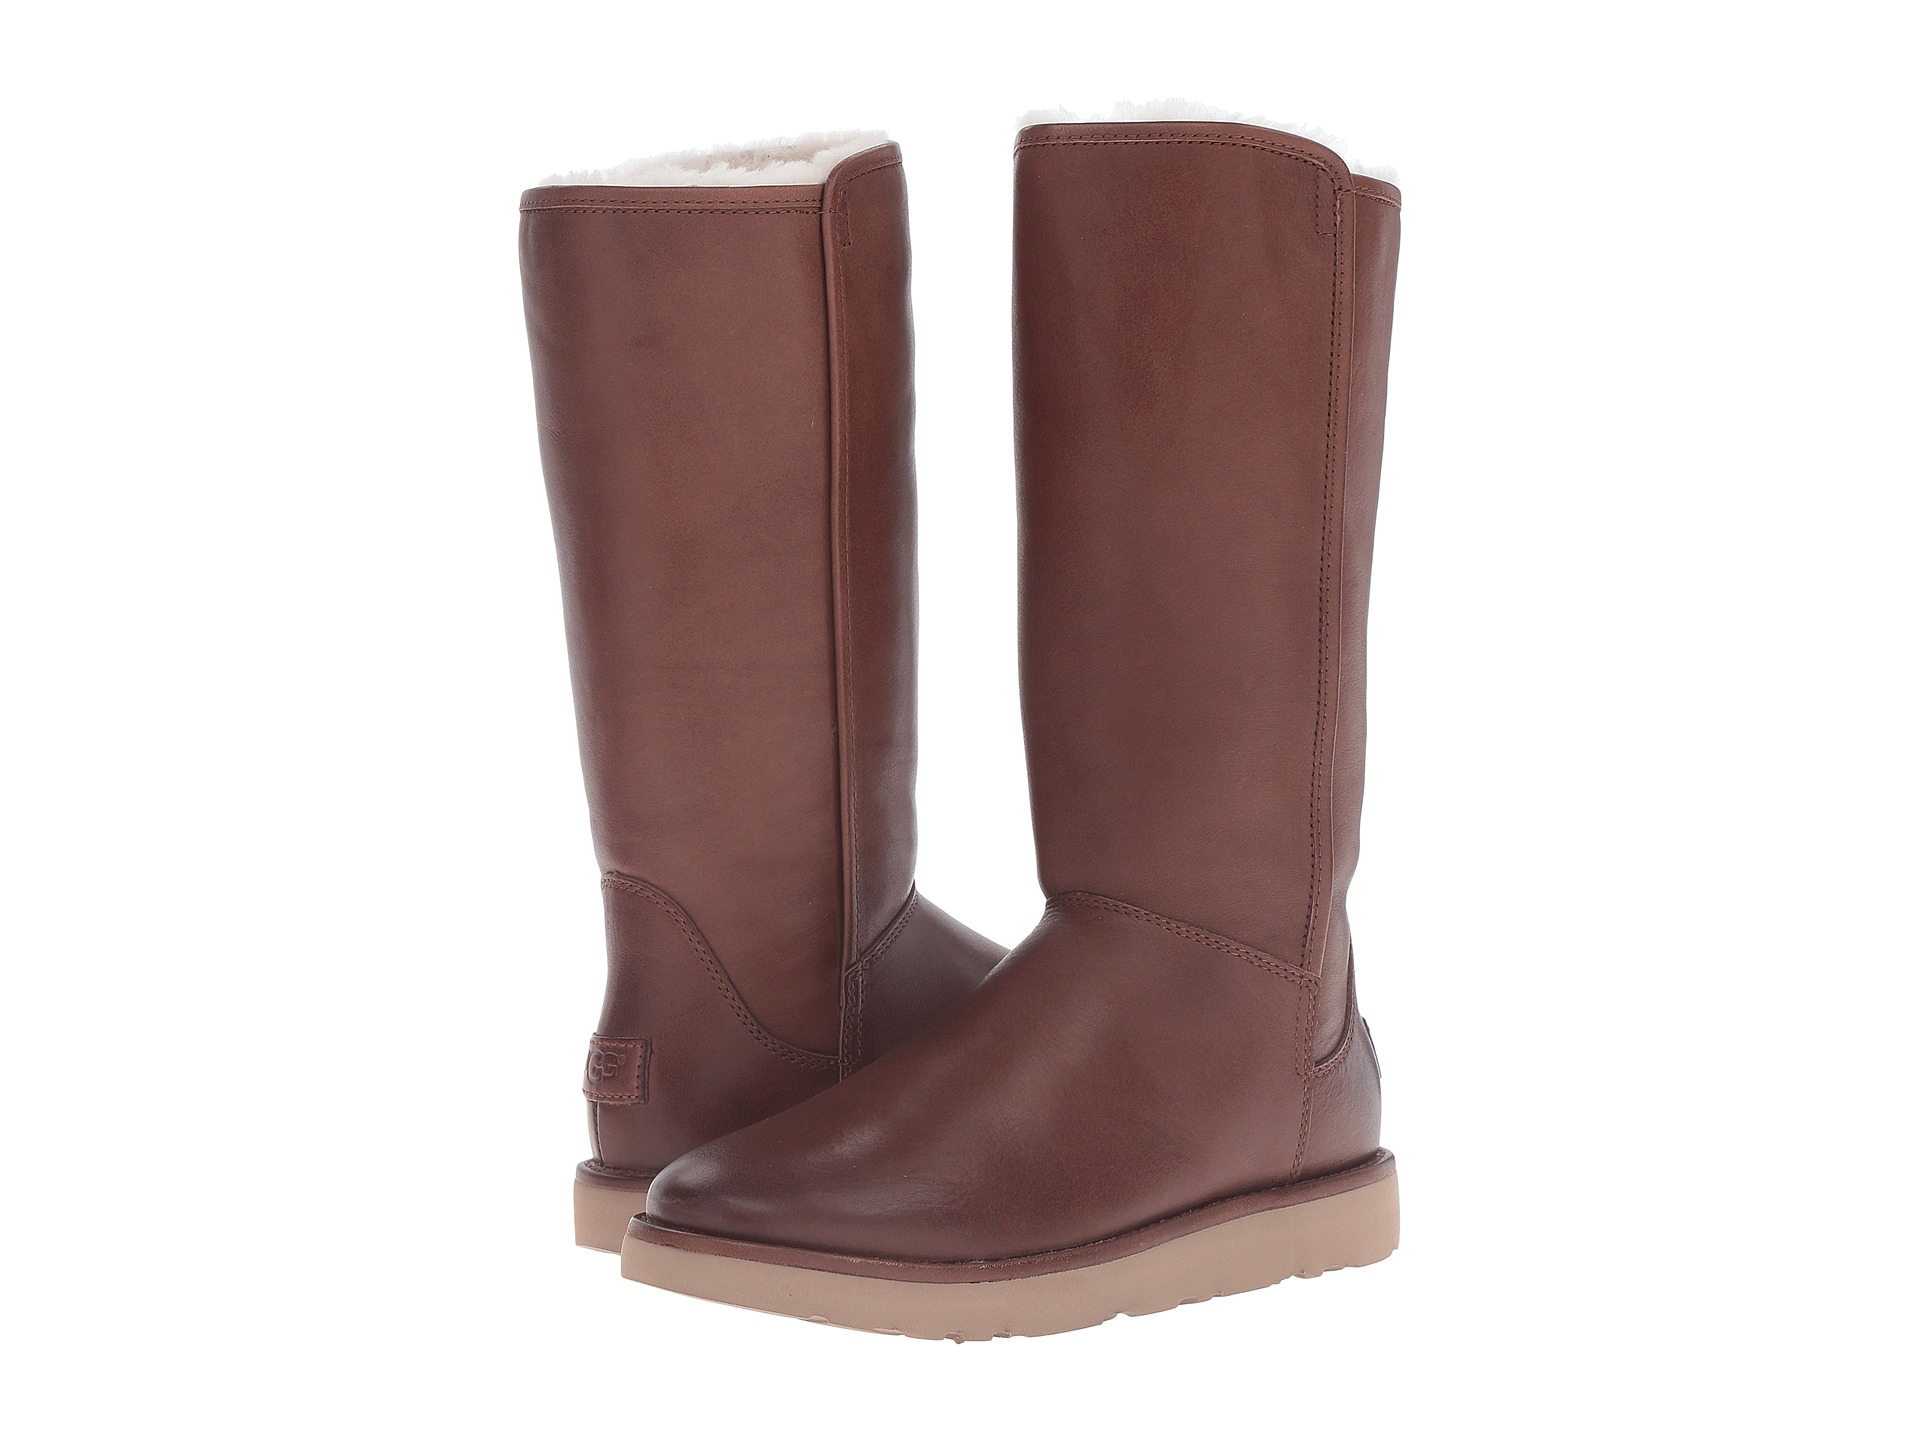 Ugg Abree Ii Leather Zappos Com Free Shipping Both Ways